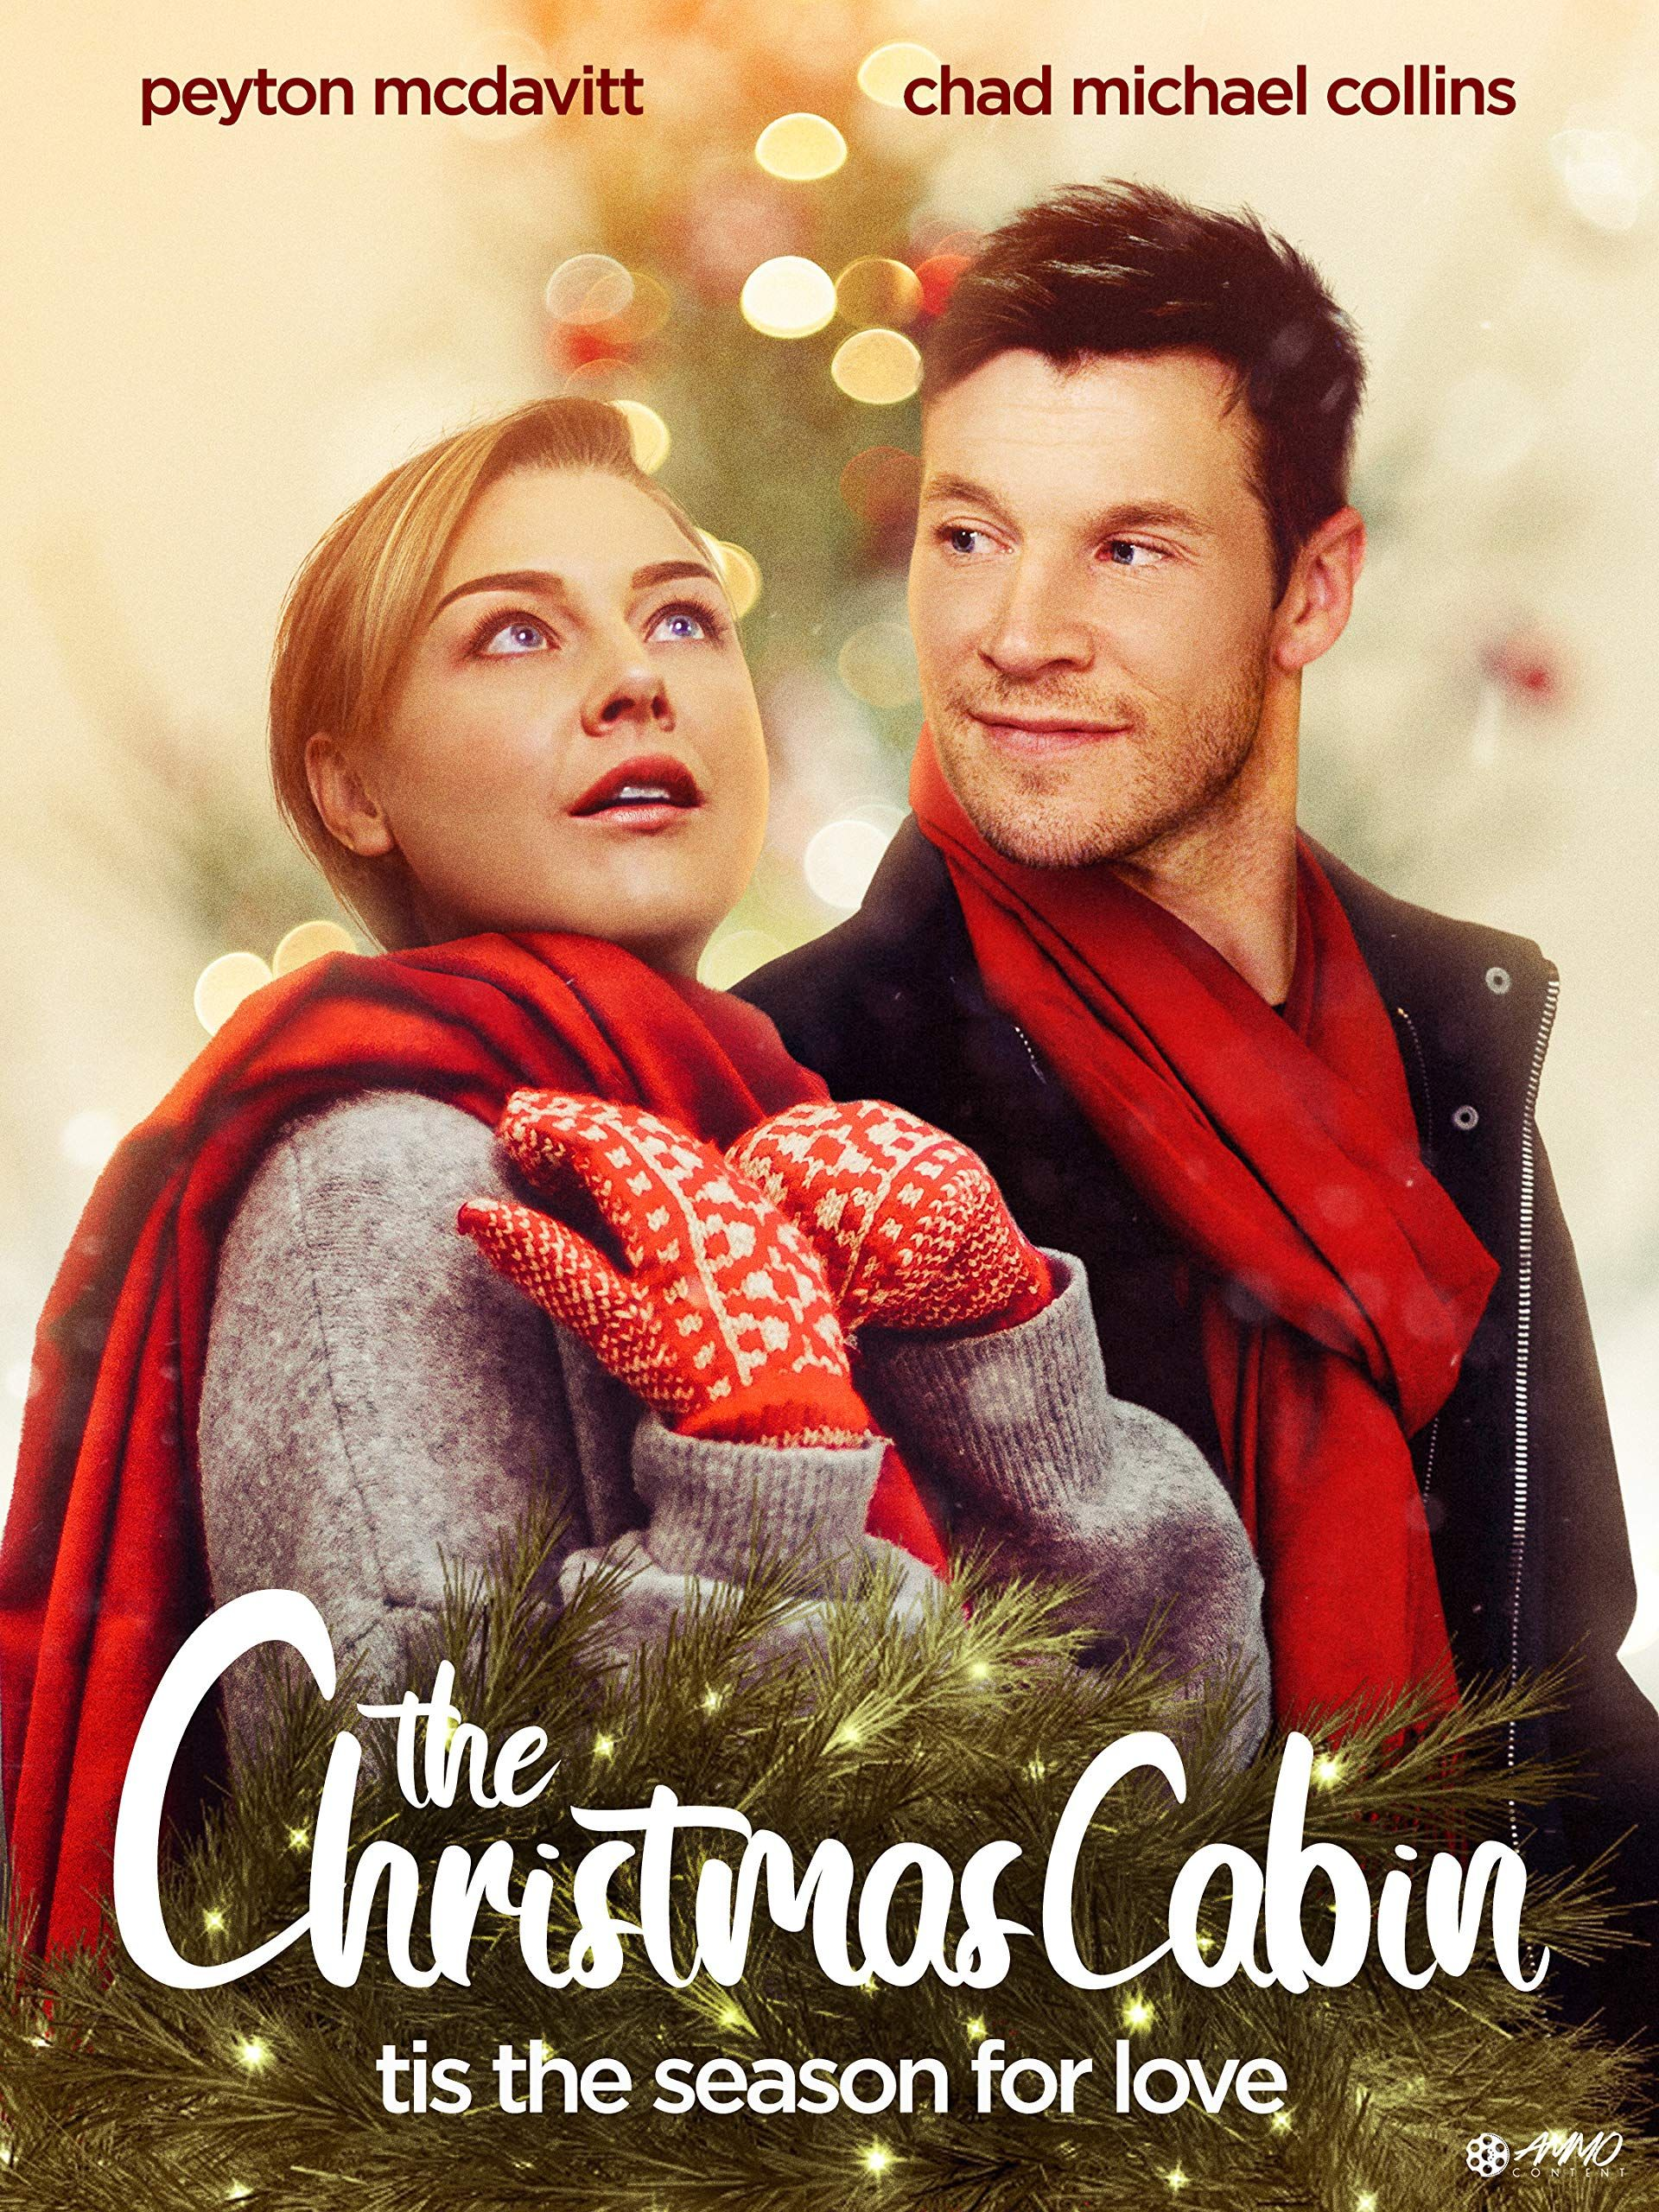 All Things Fair Full Movie Online Free Watch 25 best christmas movies on amazon prime 2019 - top amazon